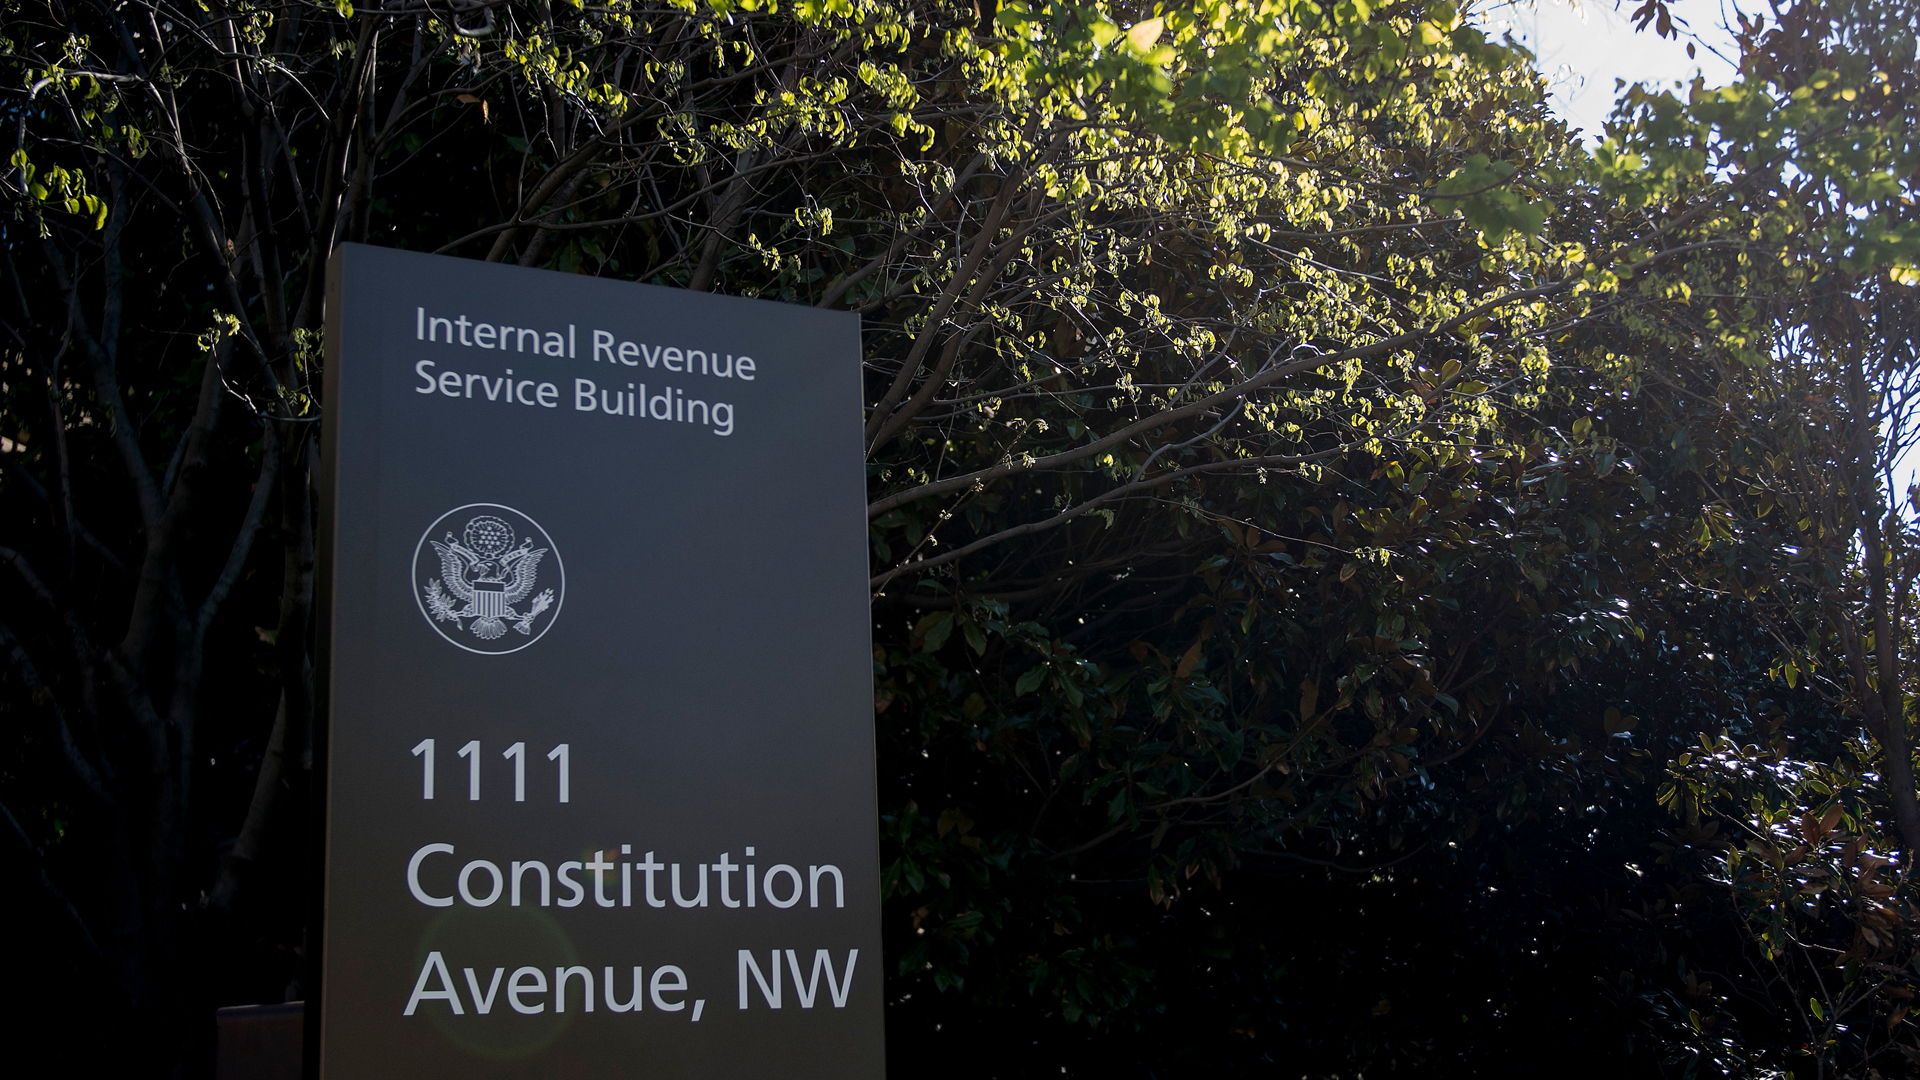 A sign for the Internal Revenue Service building is viewed in Washington, DC, on April 18, 2018. (Credit: JIM WATSON/AFP/Getty Images)